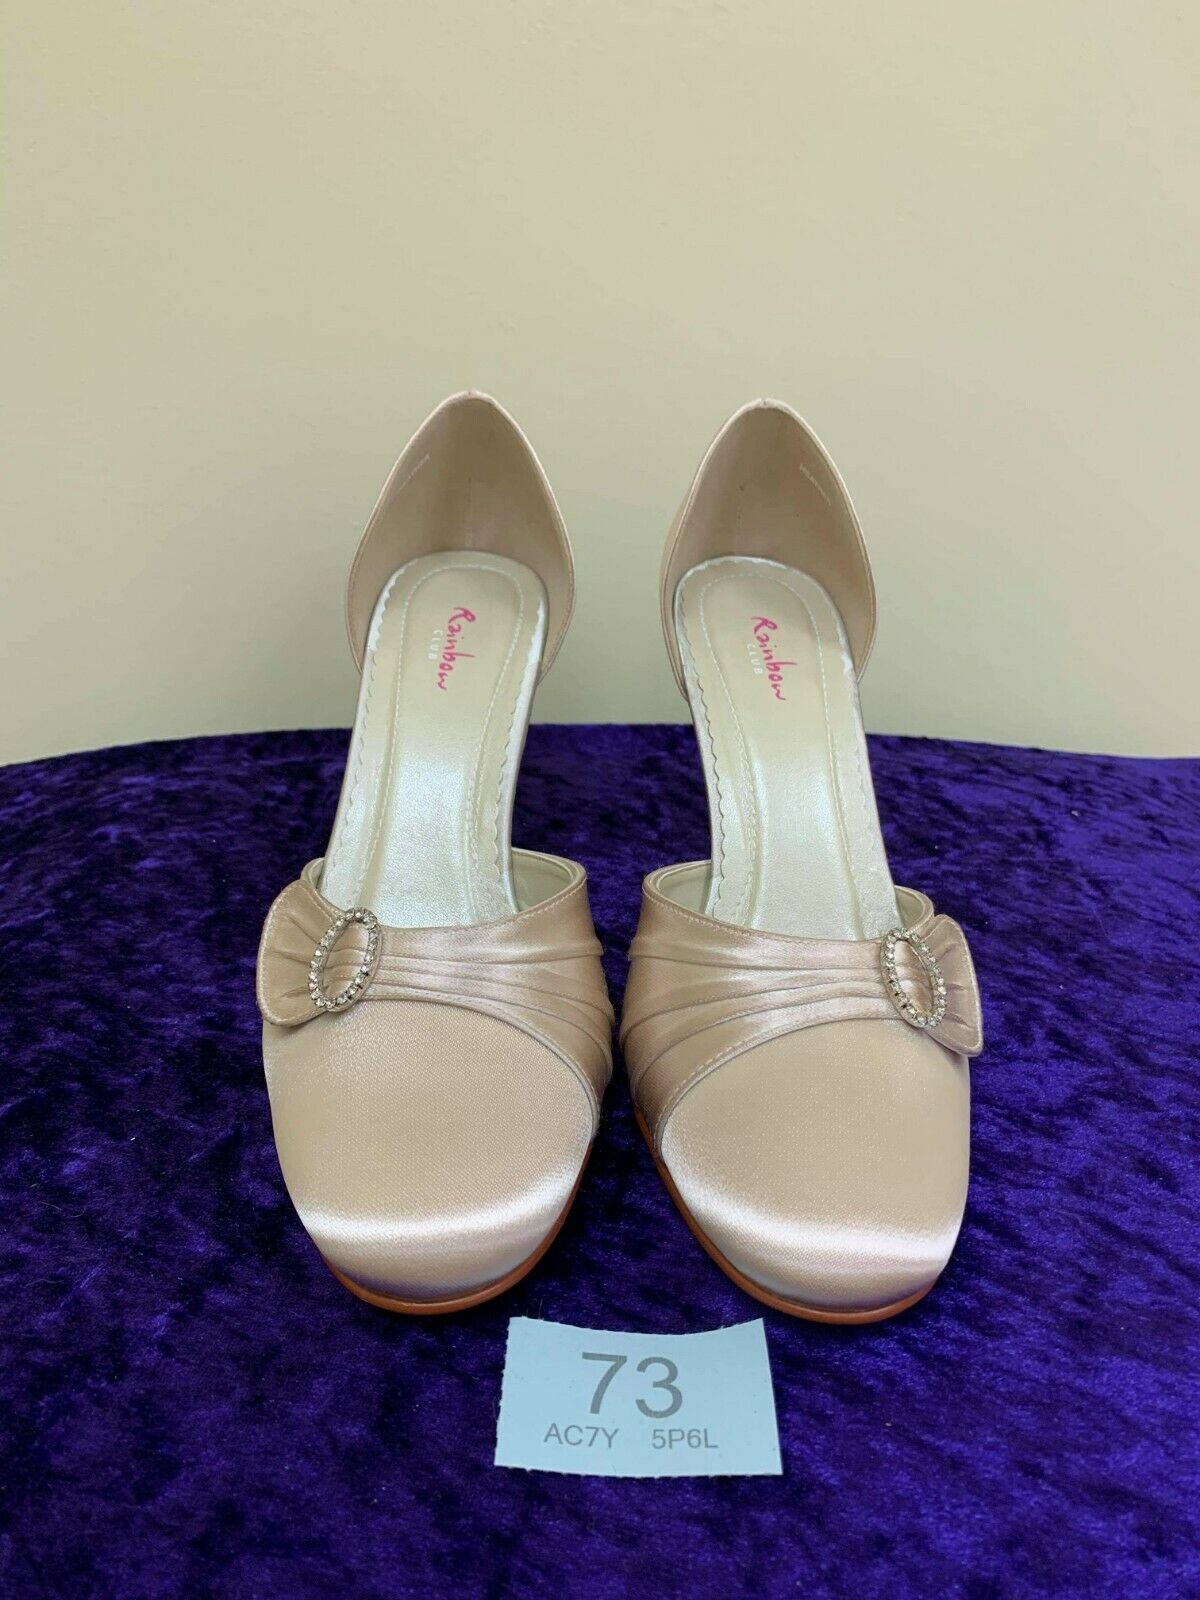 New in box Rainbow Club blush shoes size 5 Style Heather Code 73